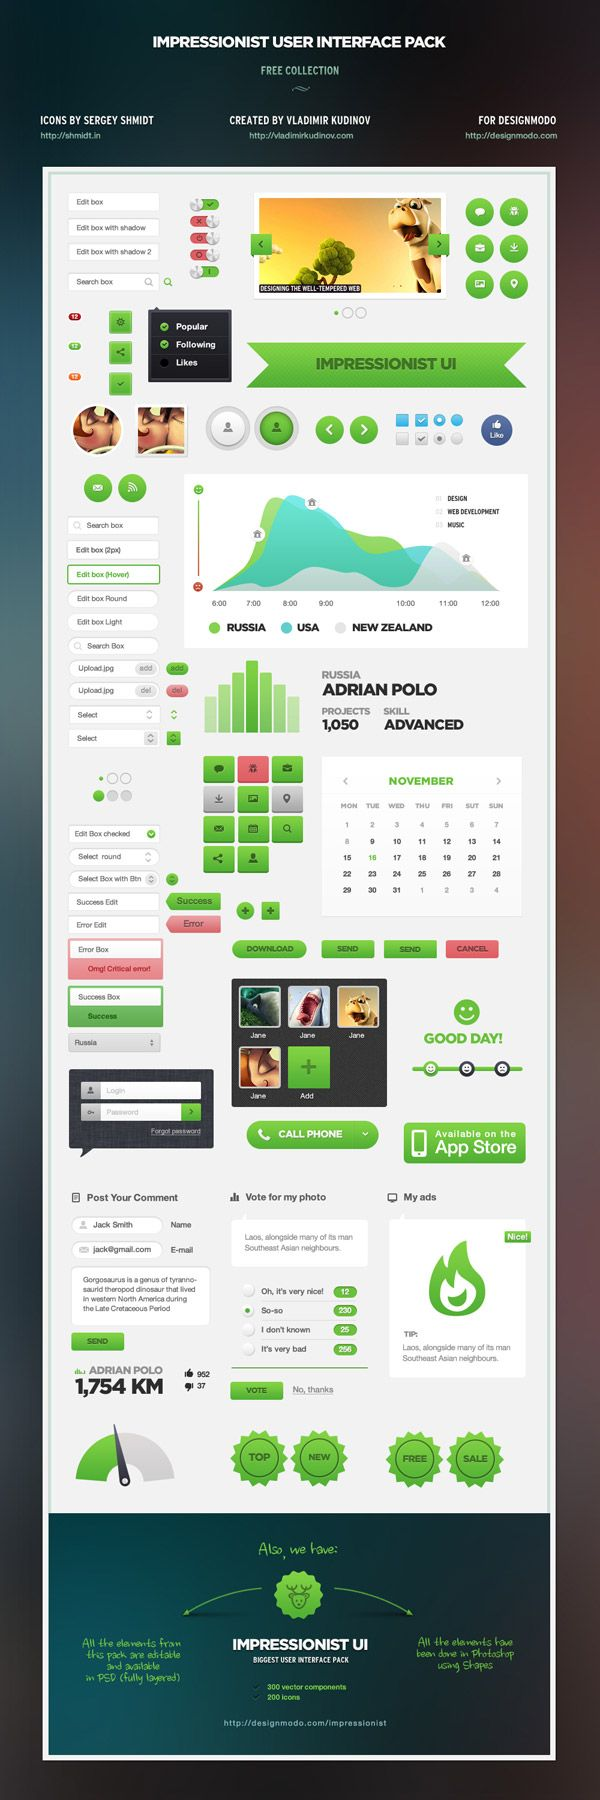 Impressionist UI Free - User Interface Pack #userinterface